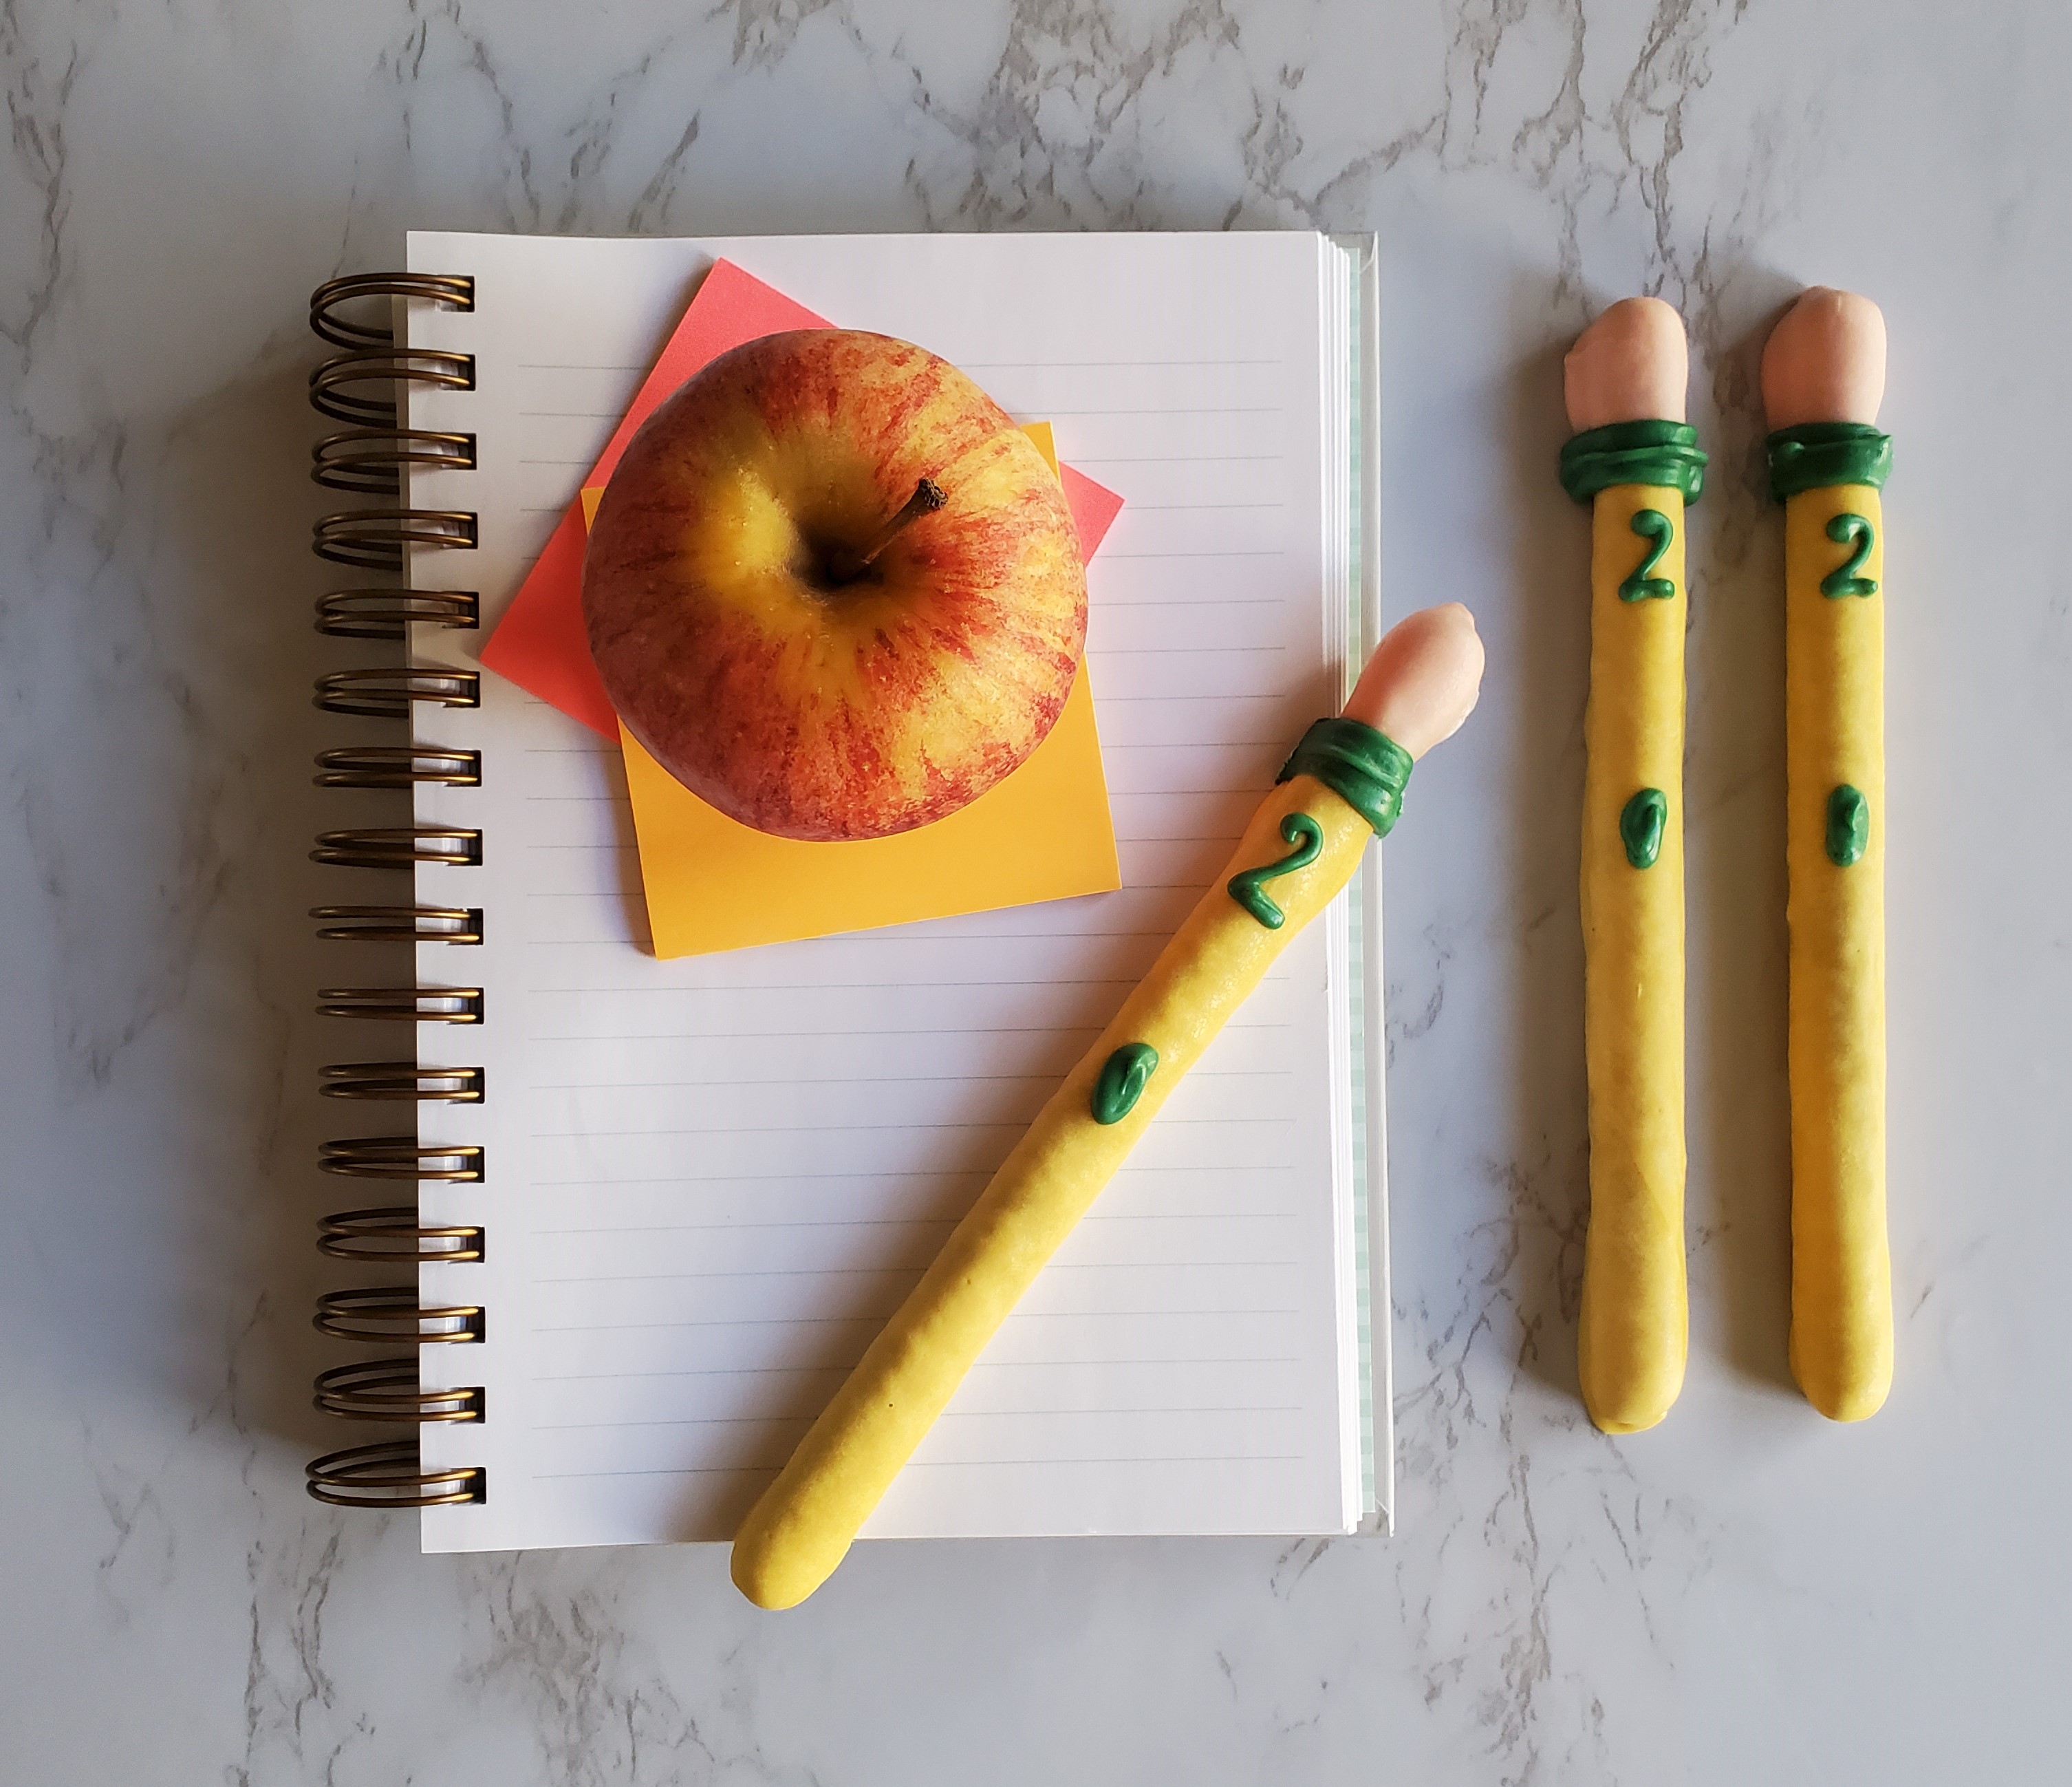 "Candy ""pencils"" made from pretzel rods lay on top of a school ruled notebook and post-its with a lunch room style apple on top of a marble counter."